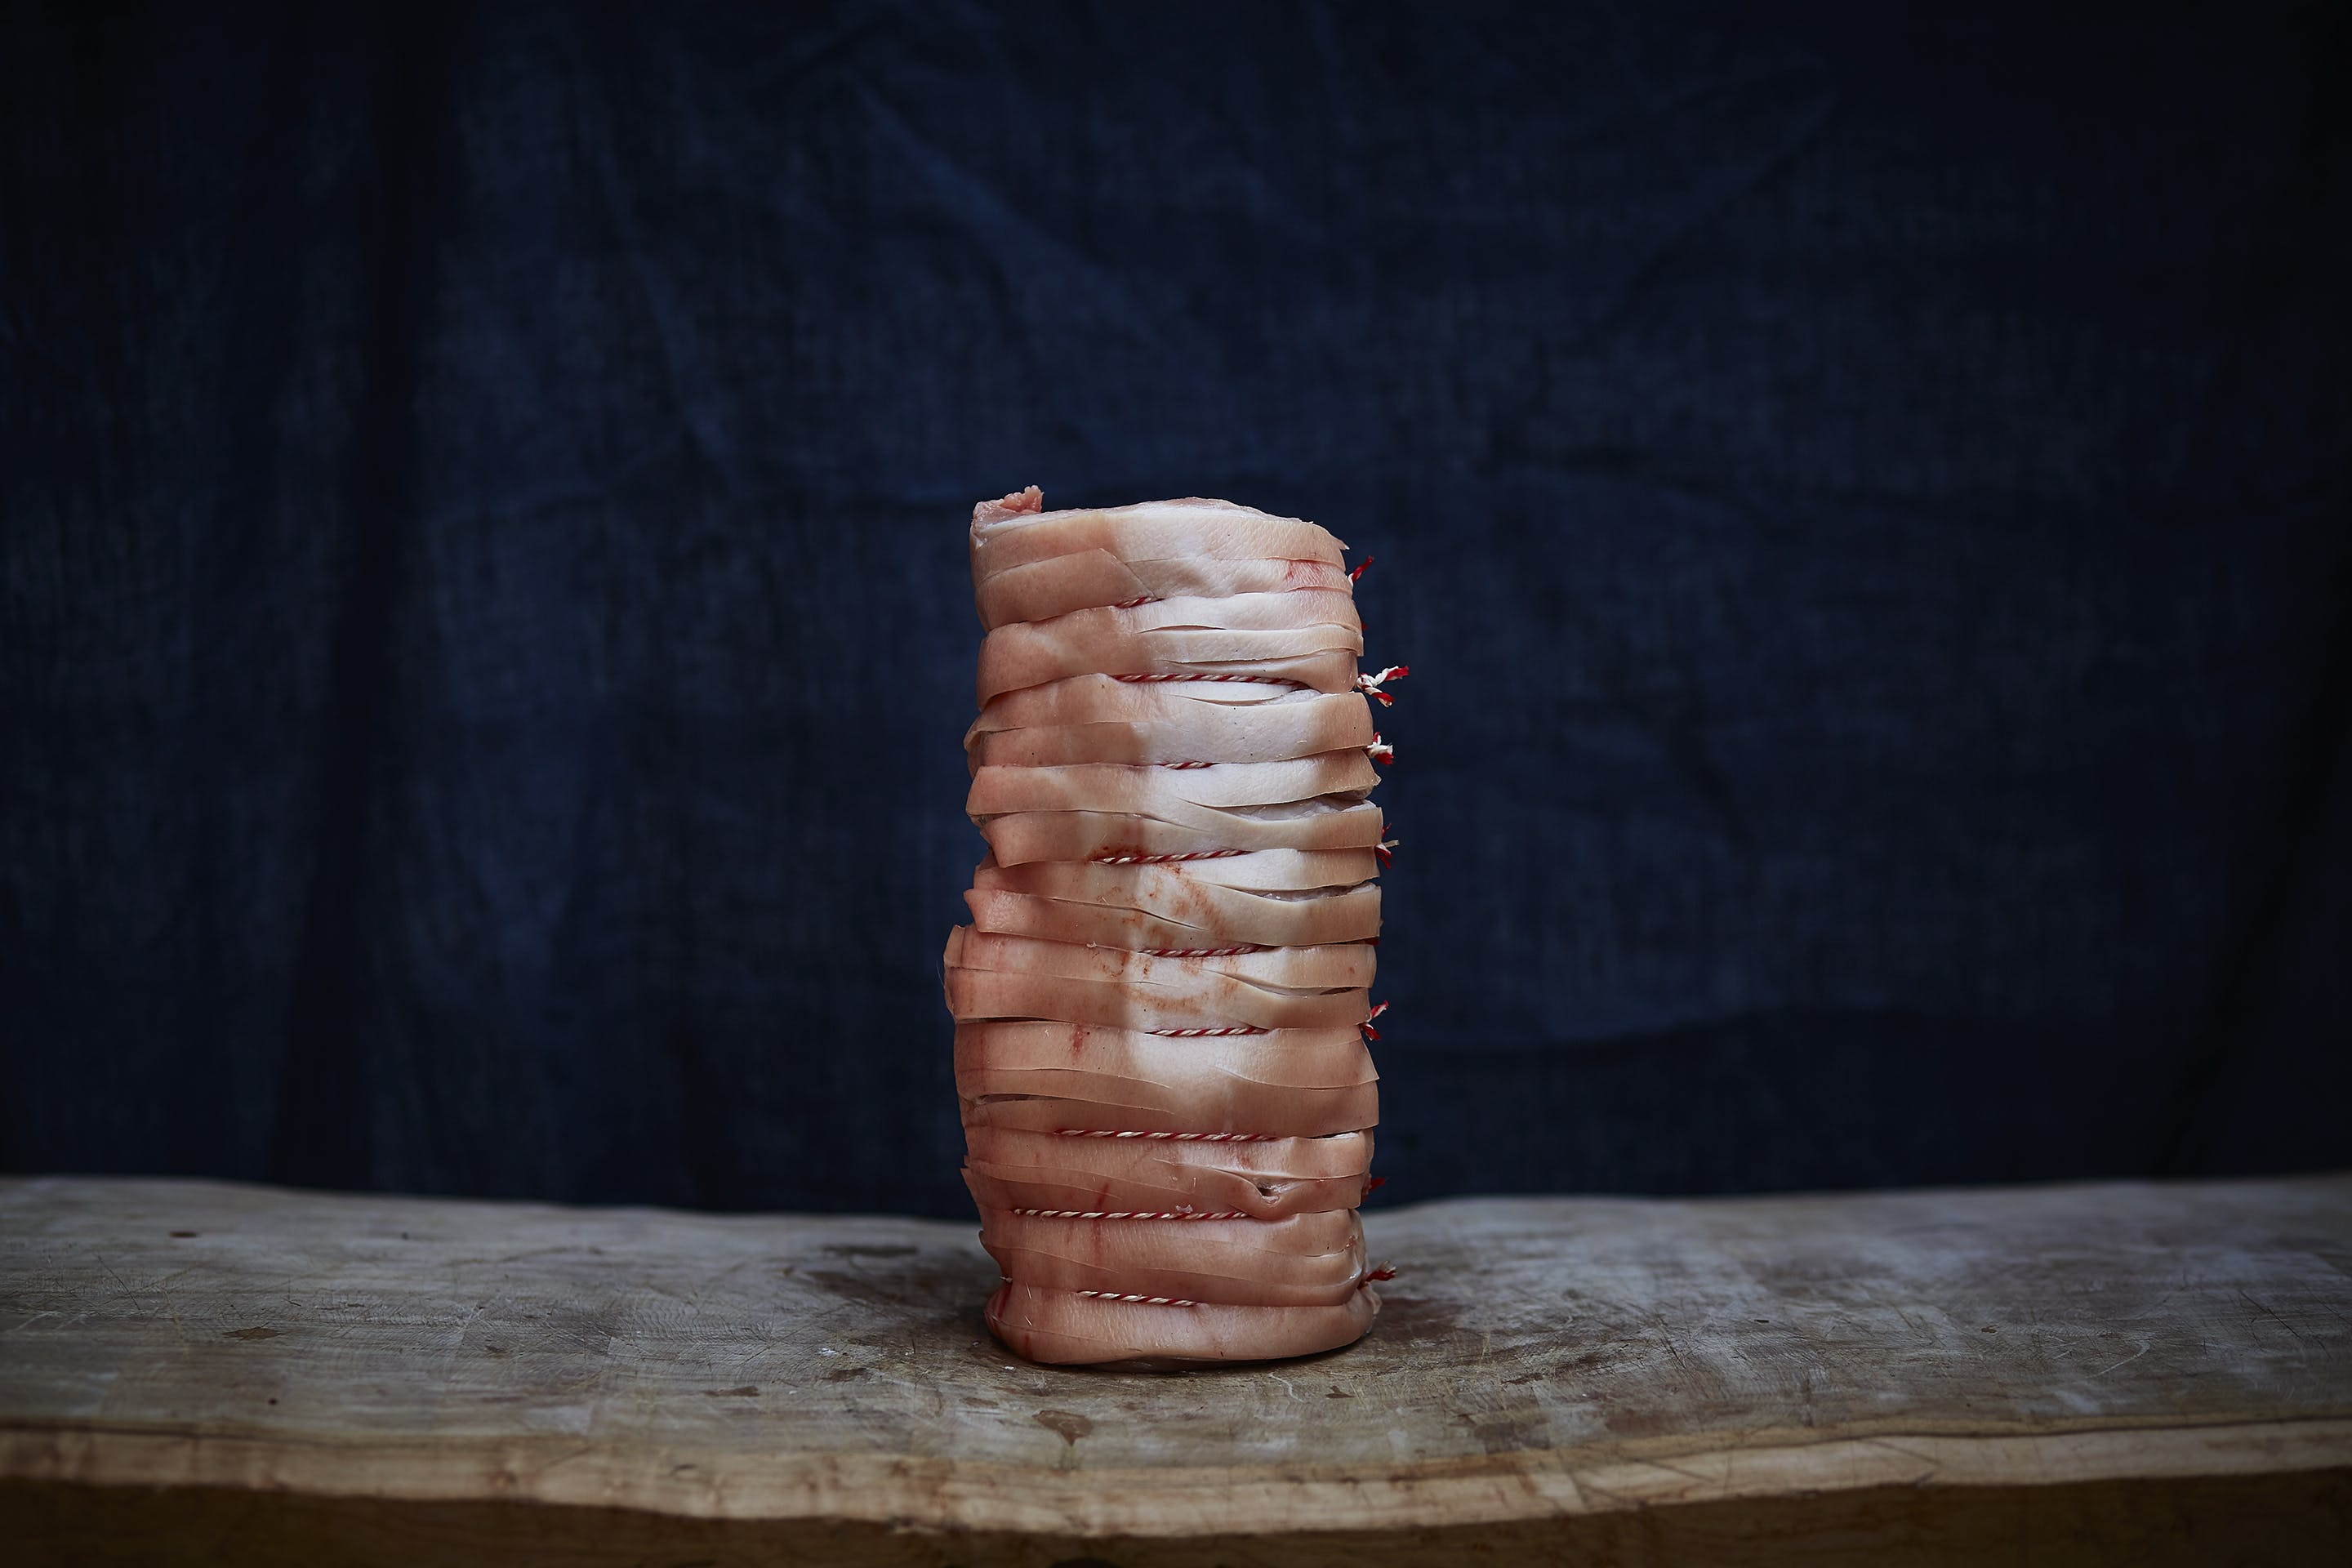 Leg of Pork (Boned and Rolled)